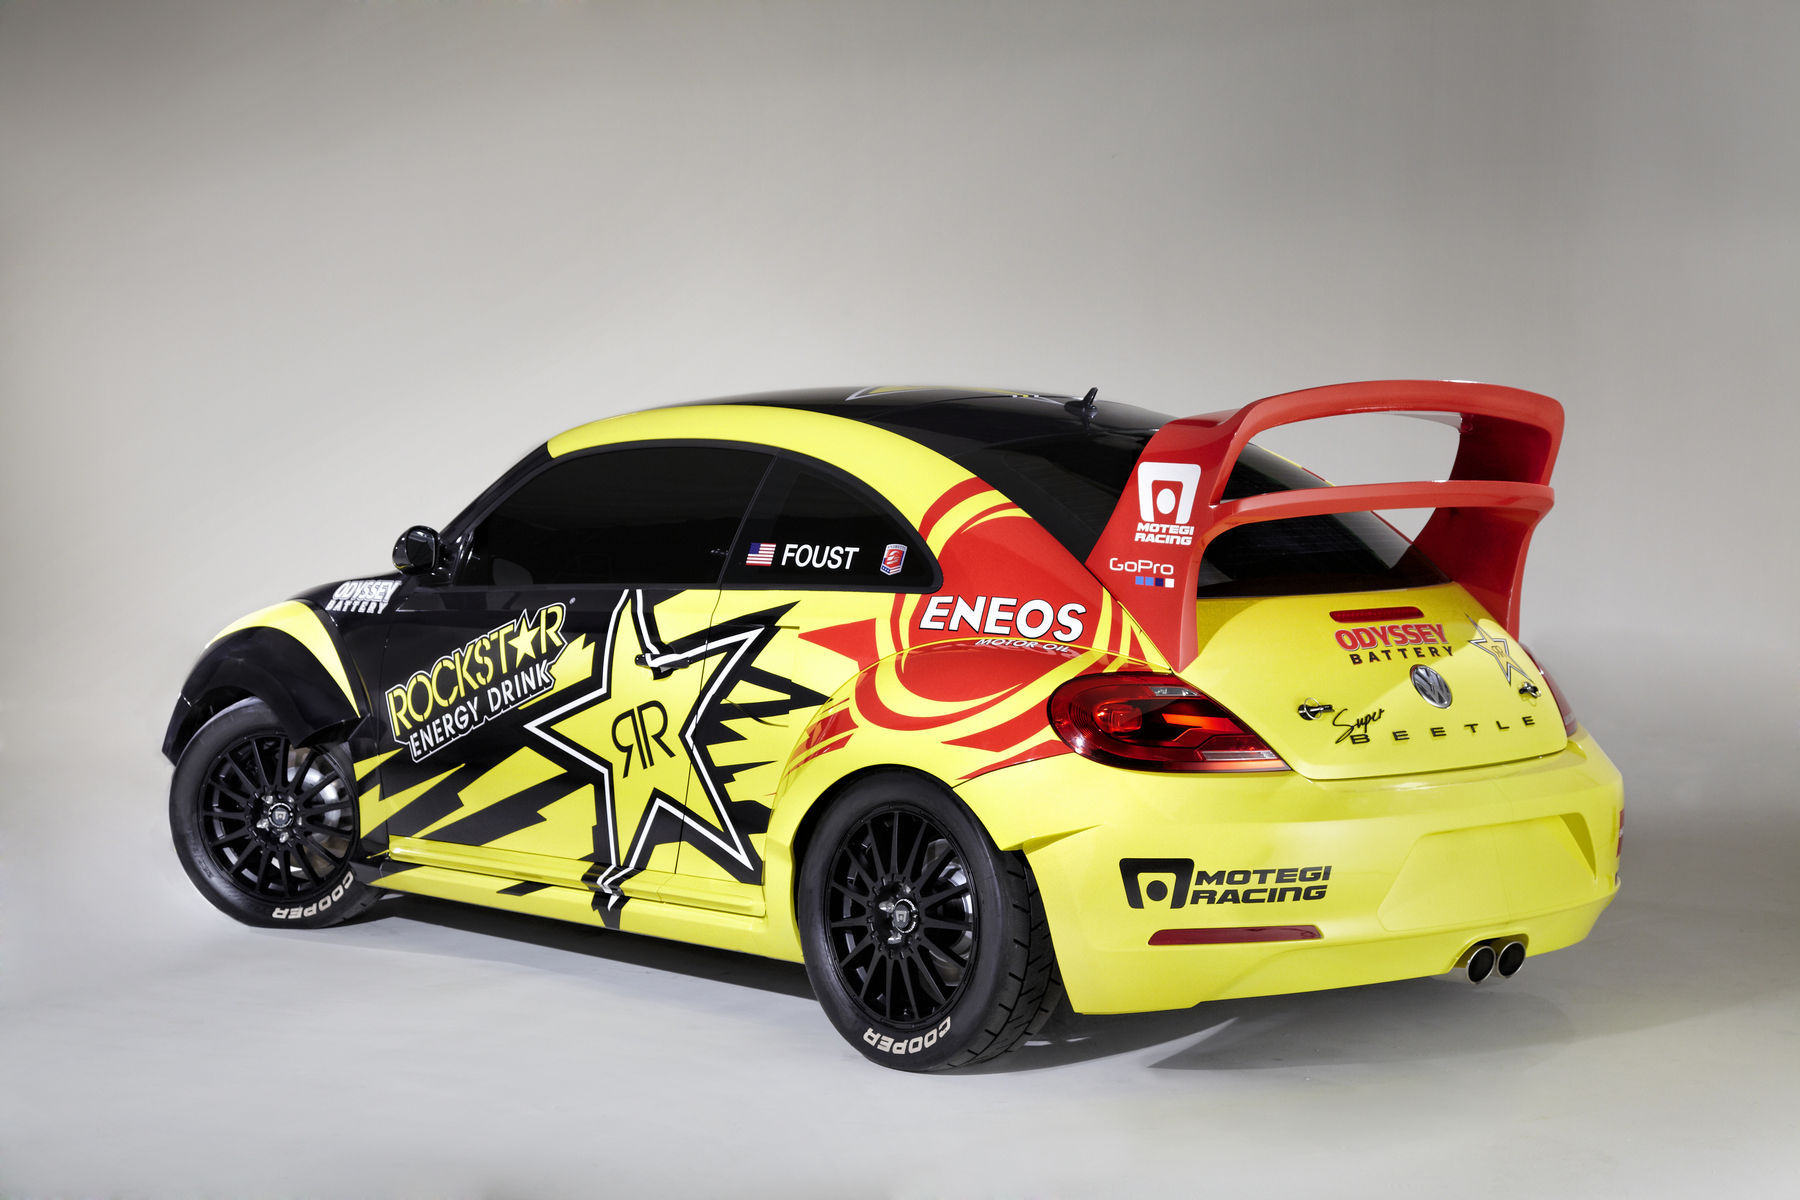 2015 Volkswagen Beetle | '15 VW Beetle GRC Rally Car